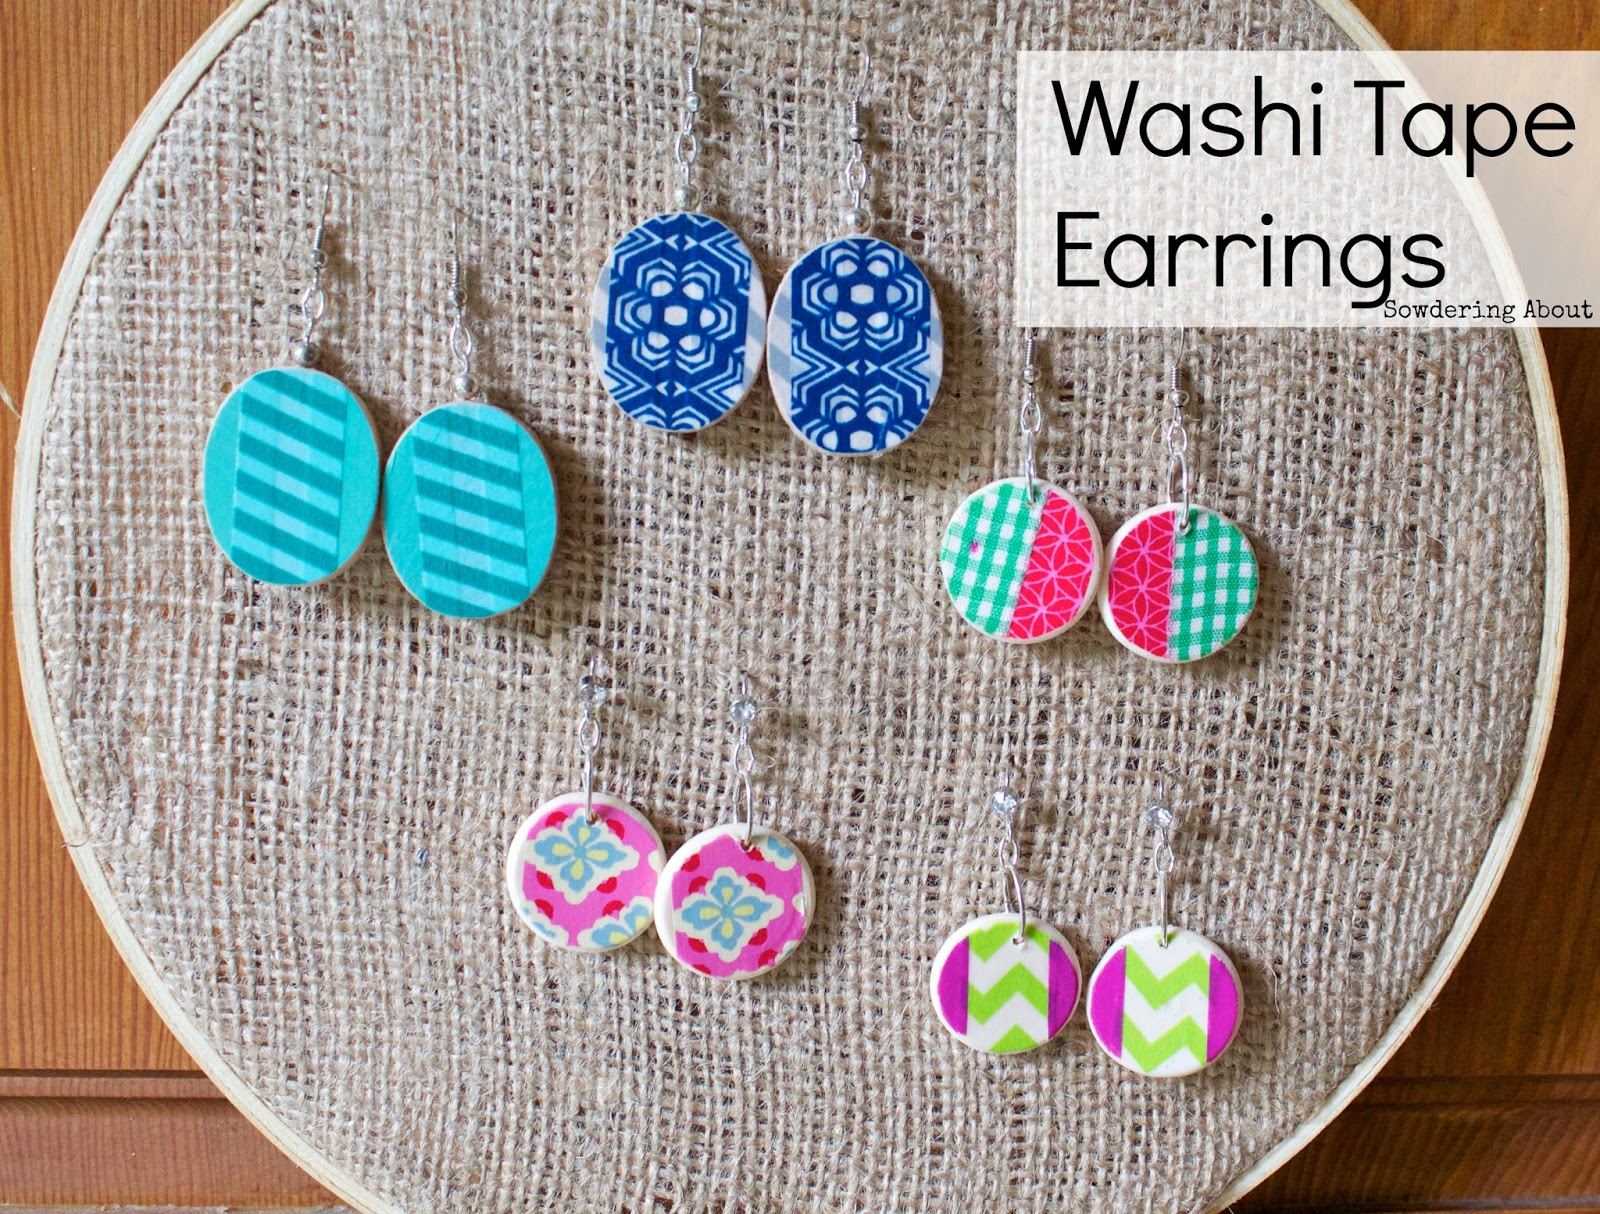 Conosciuto Sowdering About: Washi tape earrings: A tutorial BA93